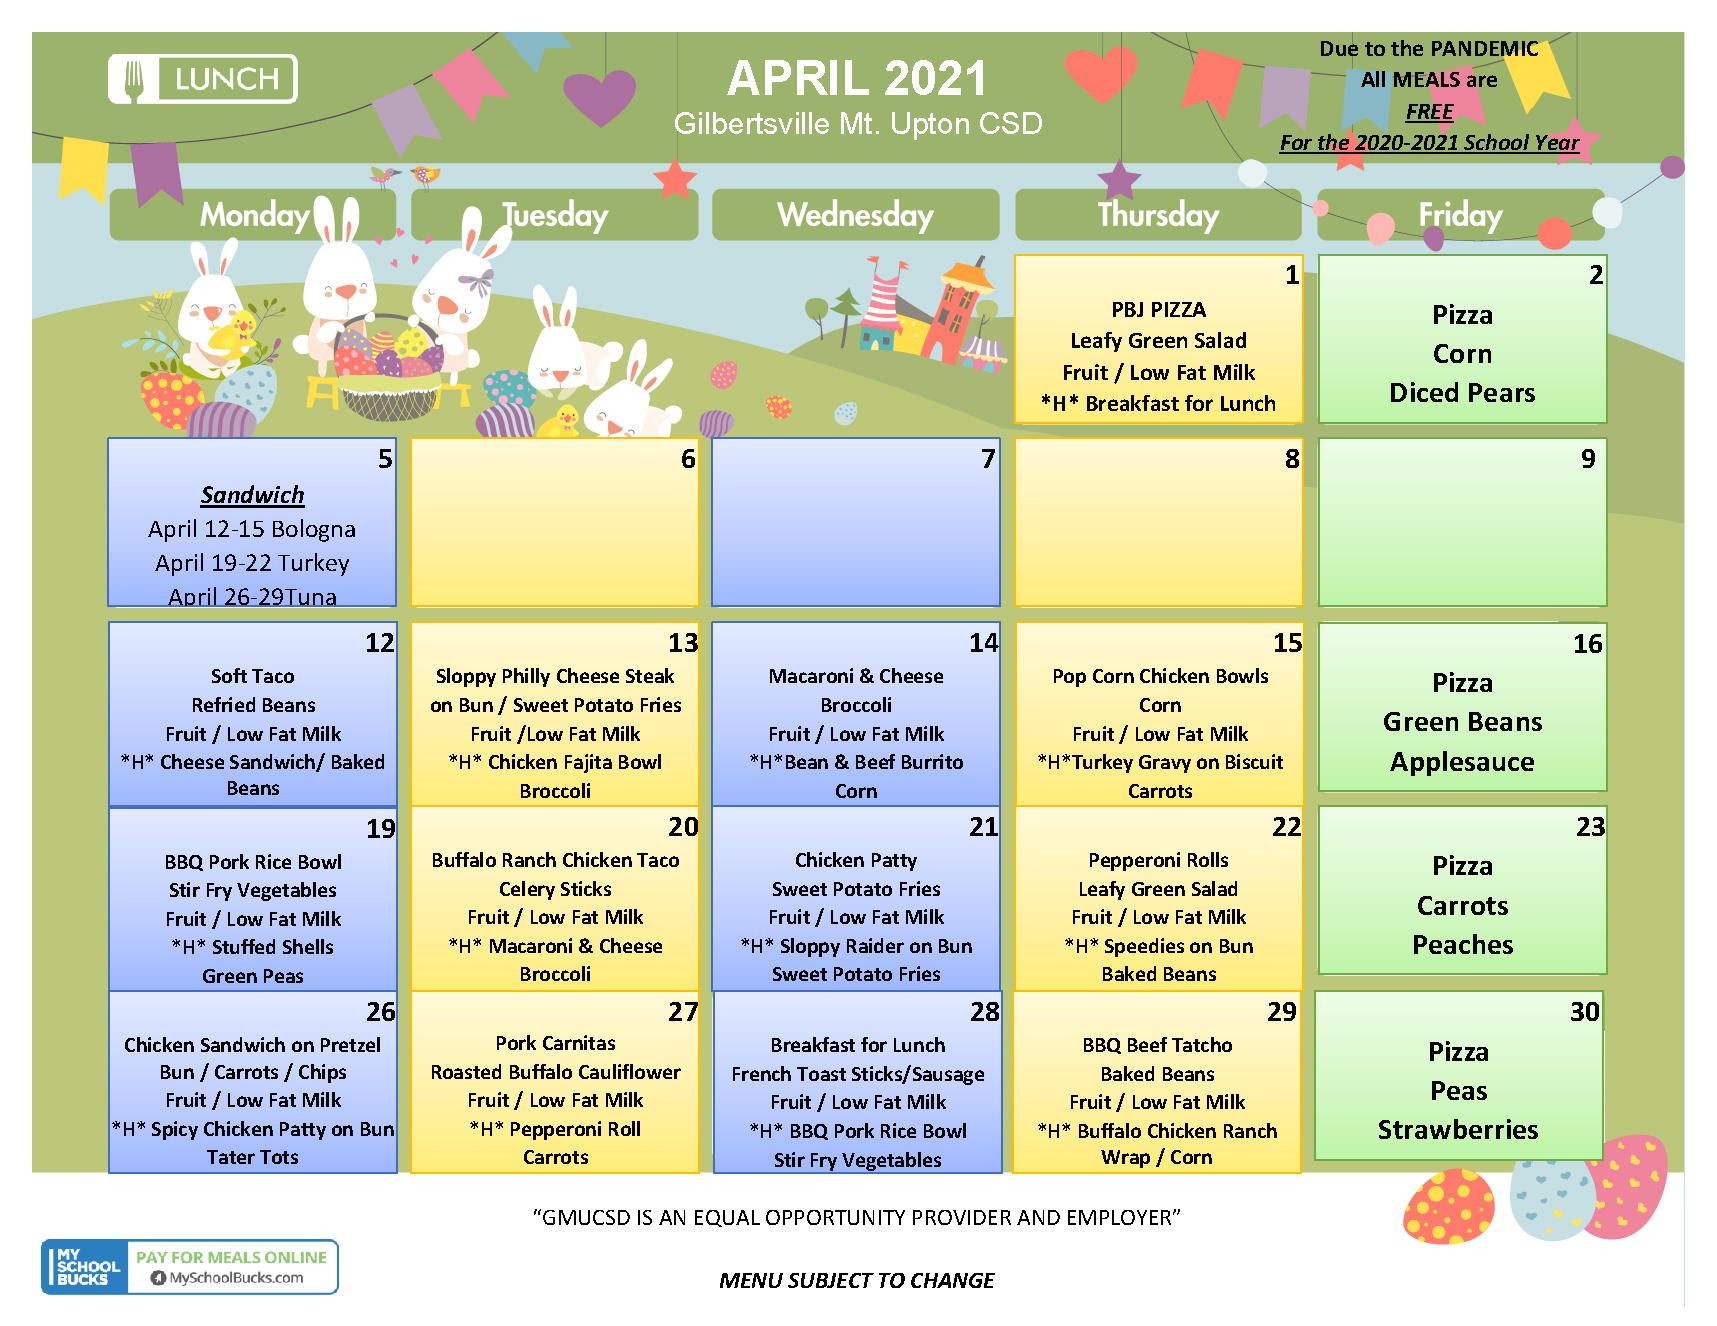 Lunch Menu - April 2021